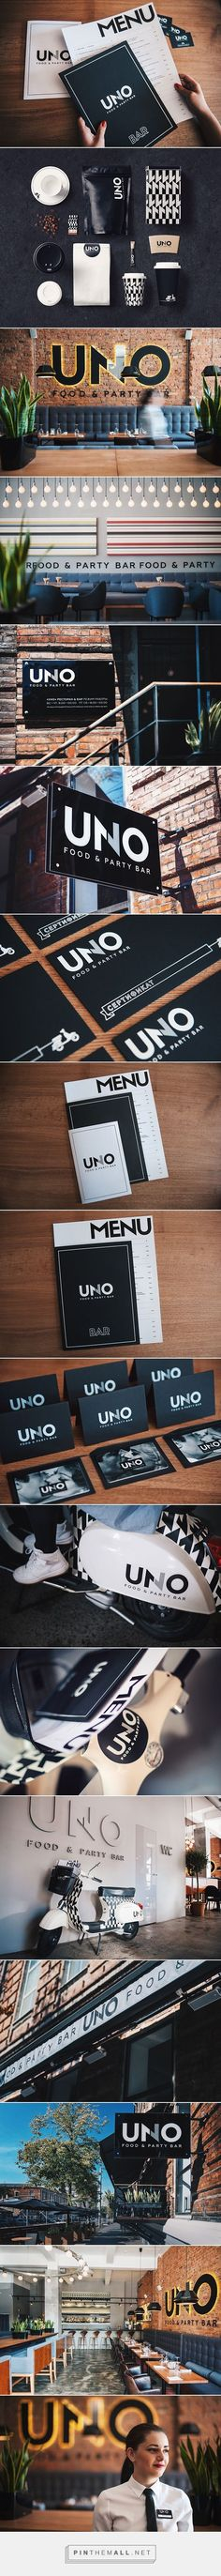 Uno Food and Party Bar on Behance